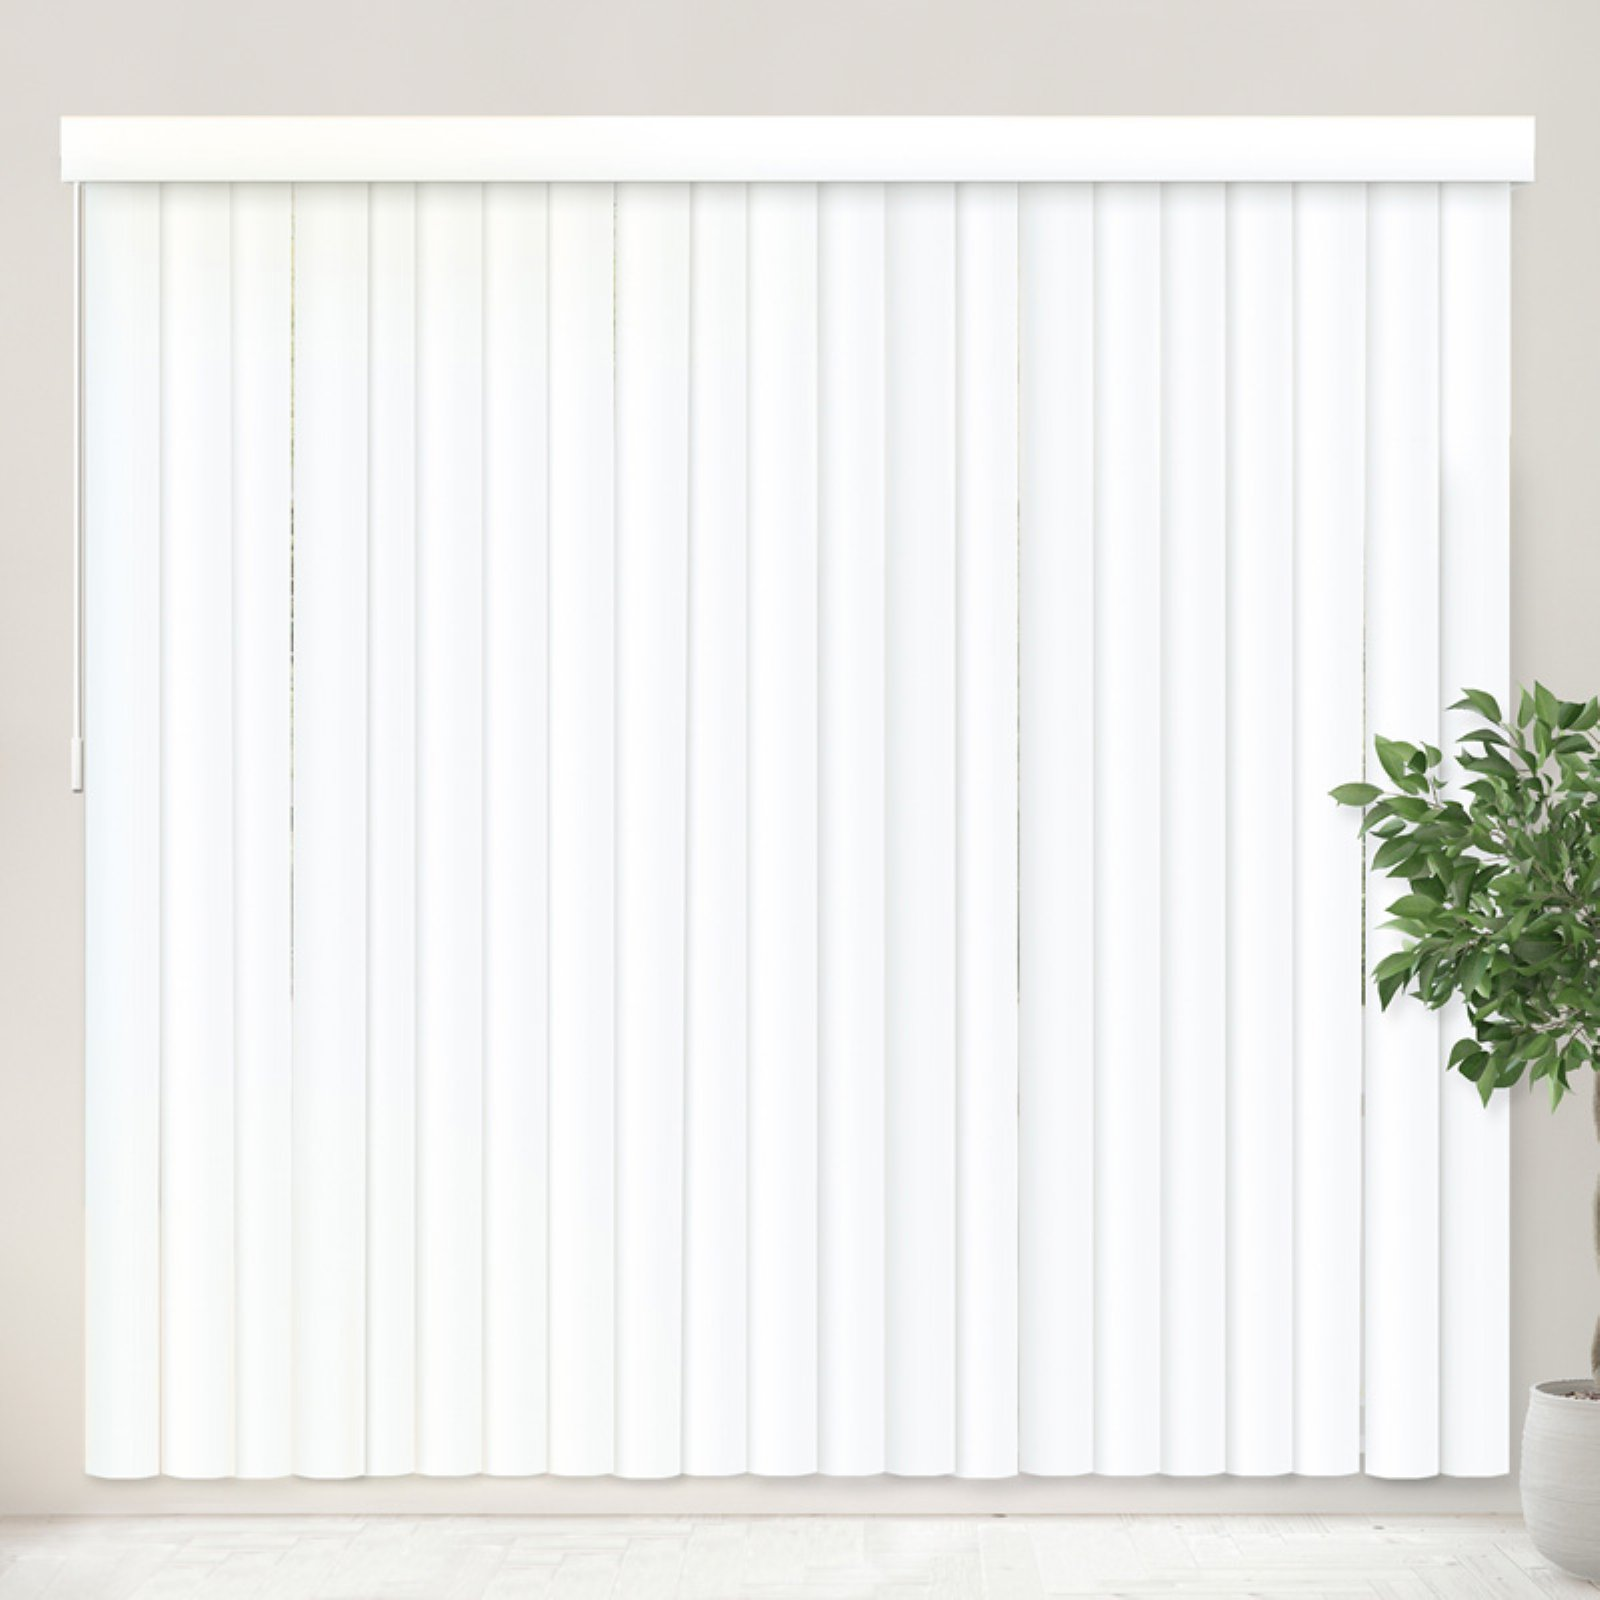 Chicology Vertical Blinds, Patio Door Or Large Window Shade, Oxford White  (High Quality